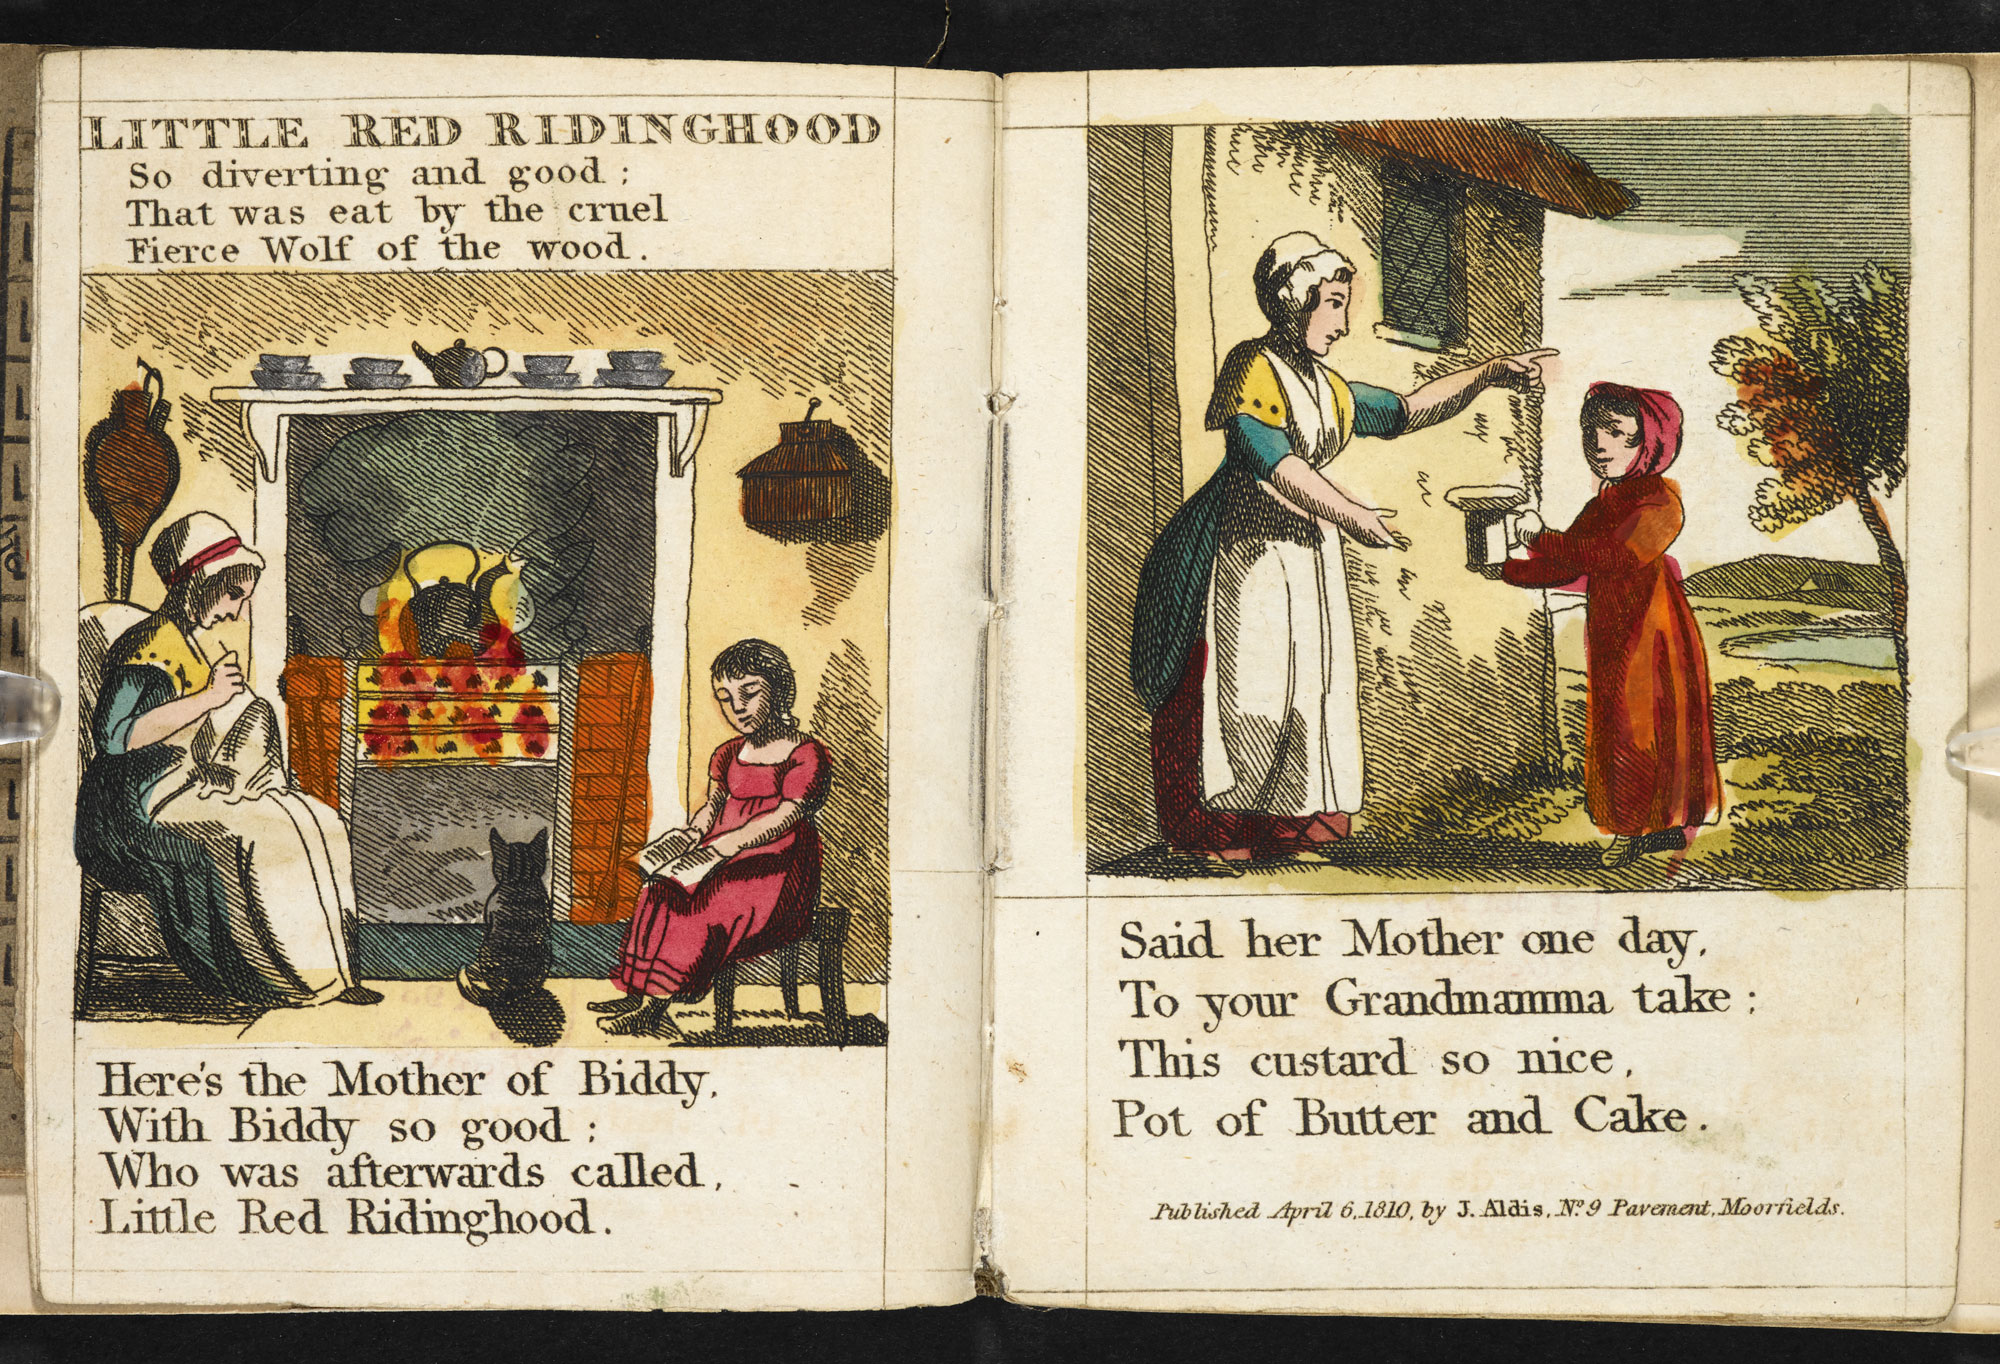 1810 edition of Little Red Riding Hood [page: 1-2]